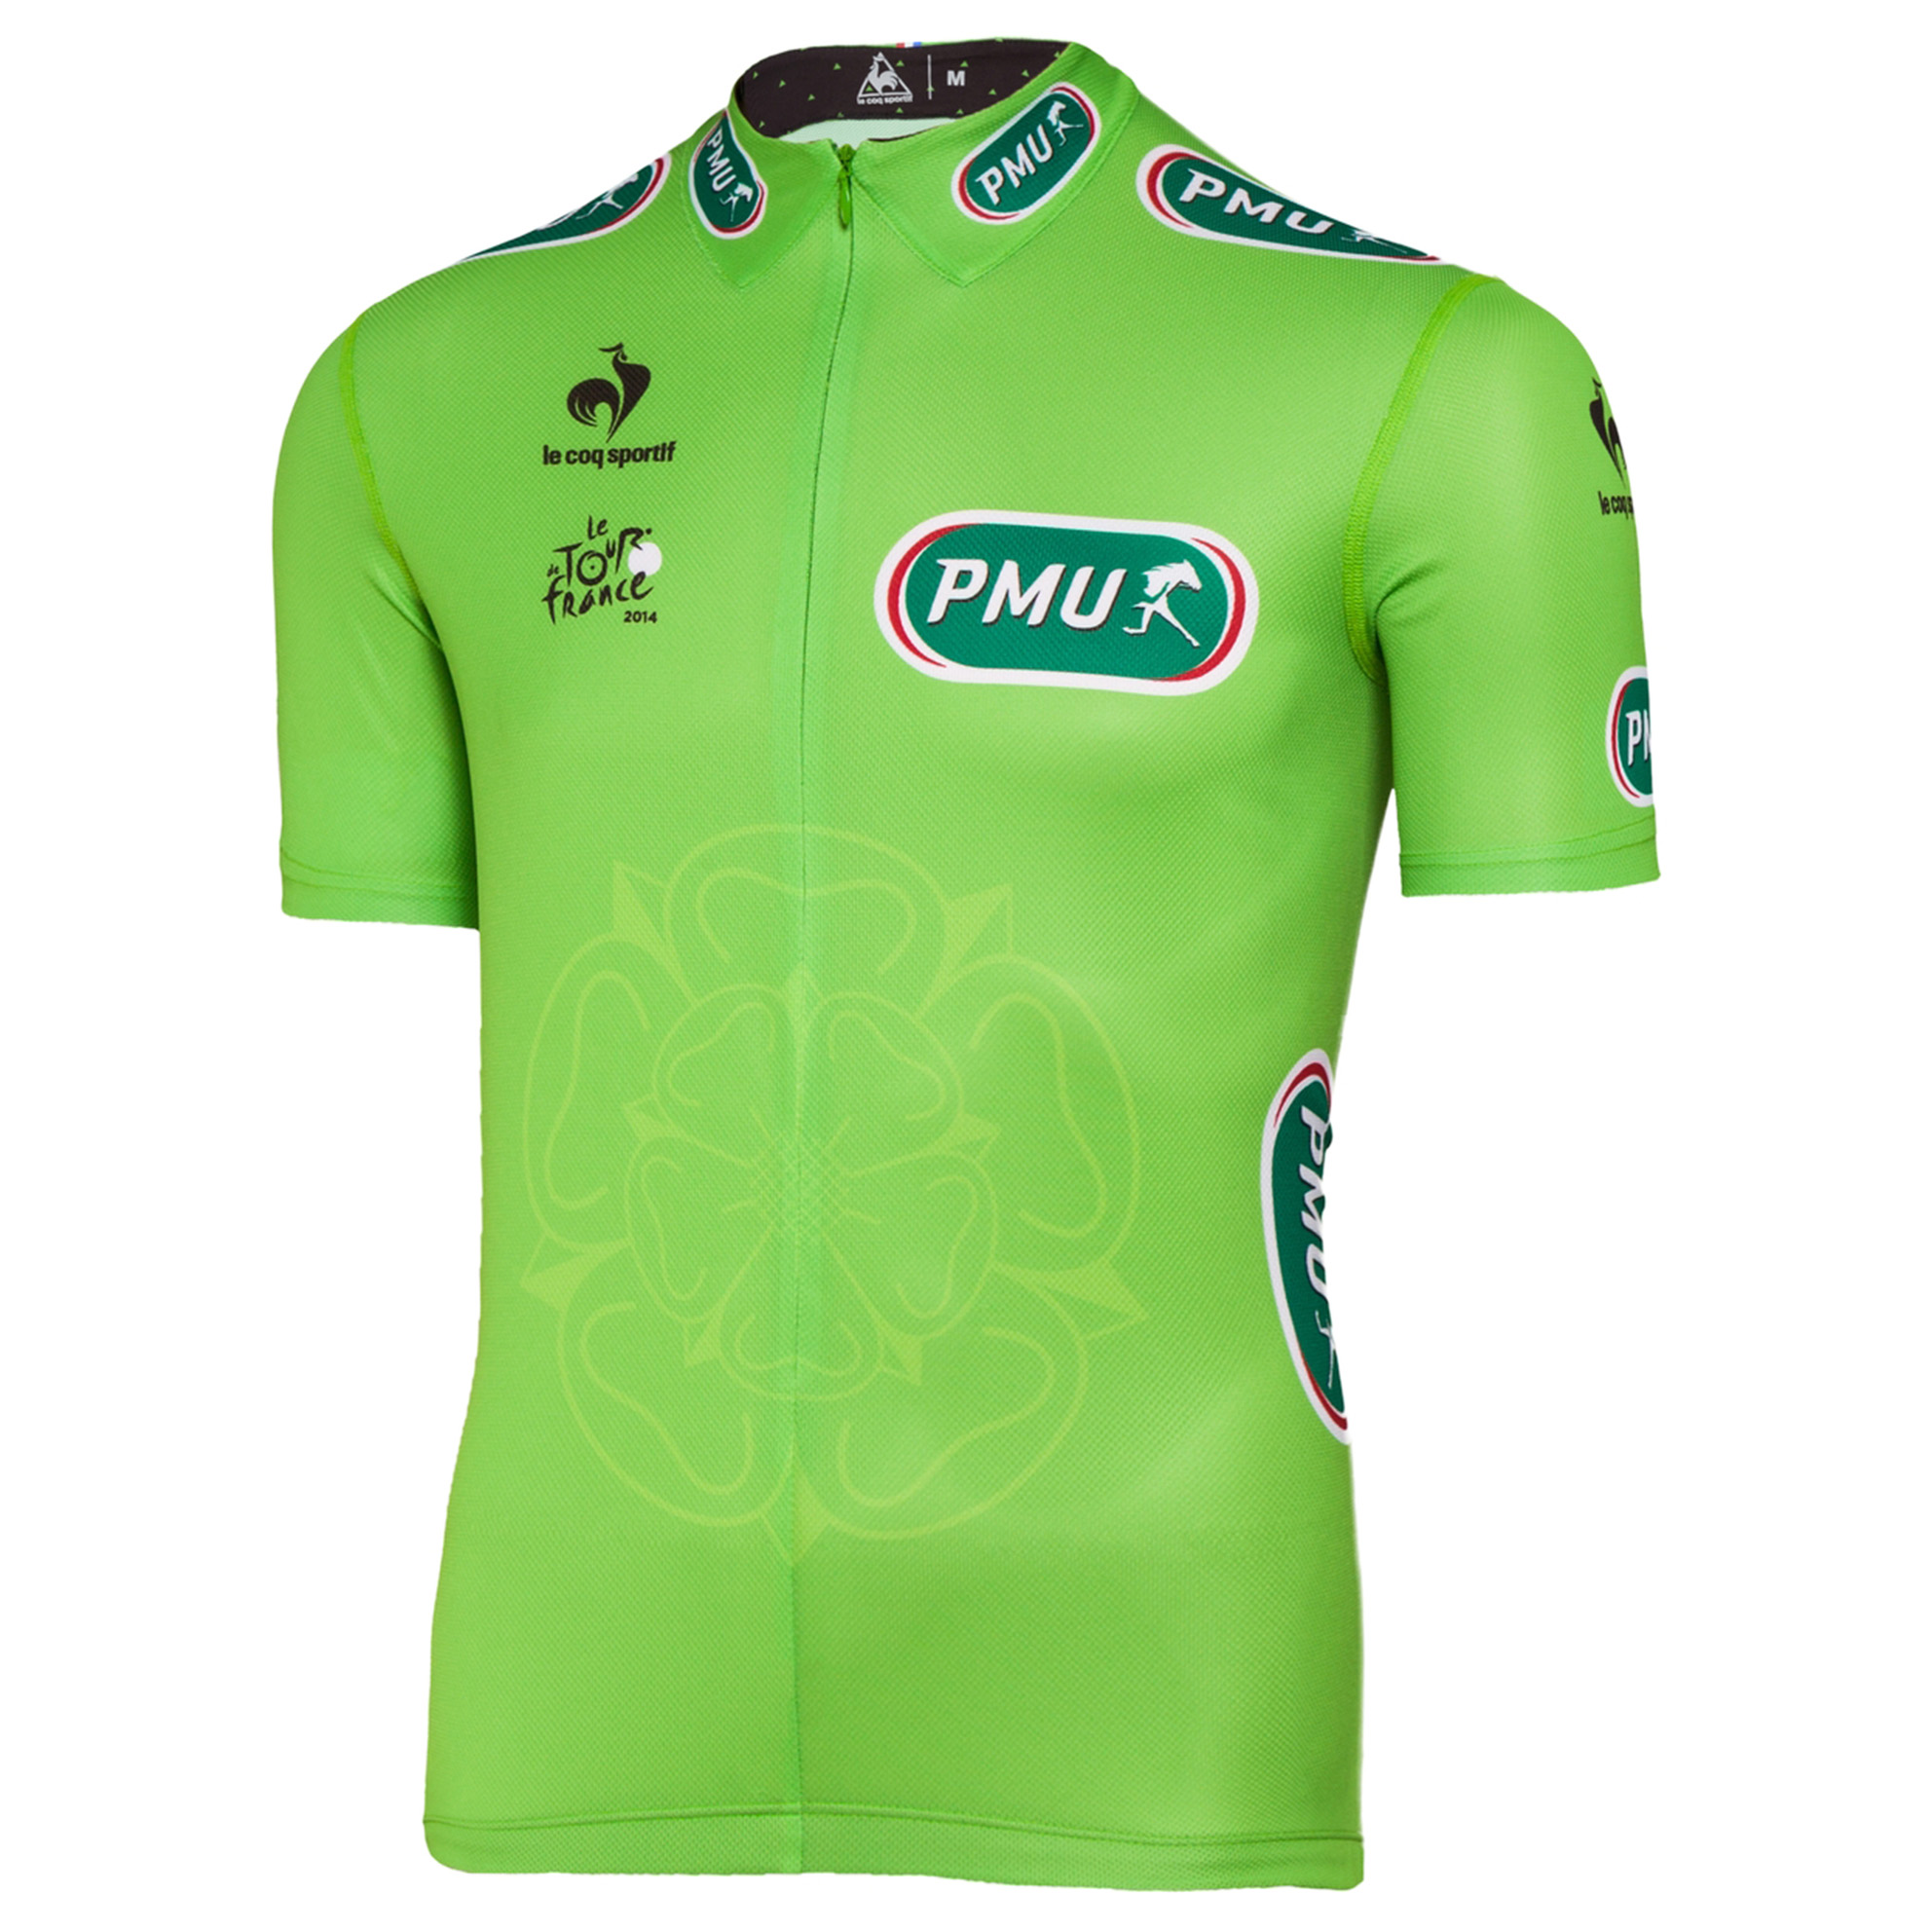 Le Tour de France Le Coq Sportif Replica Jersey - Green